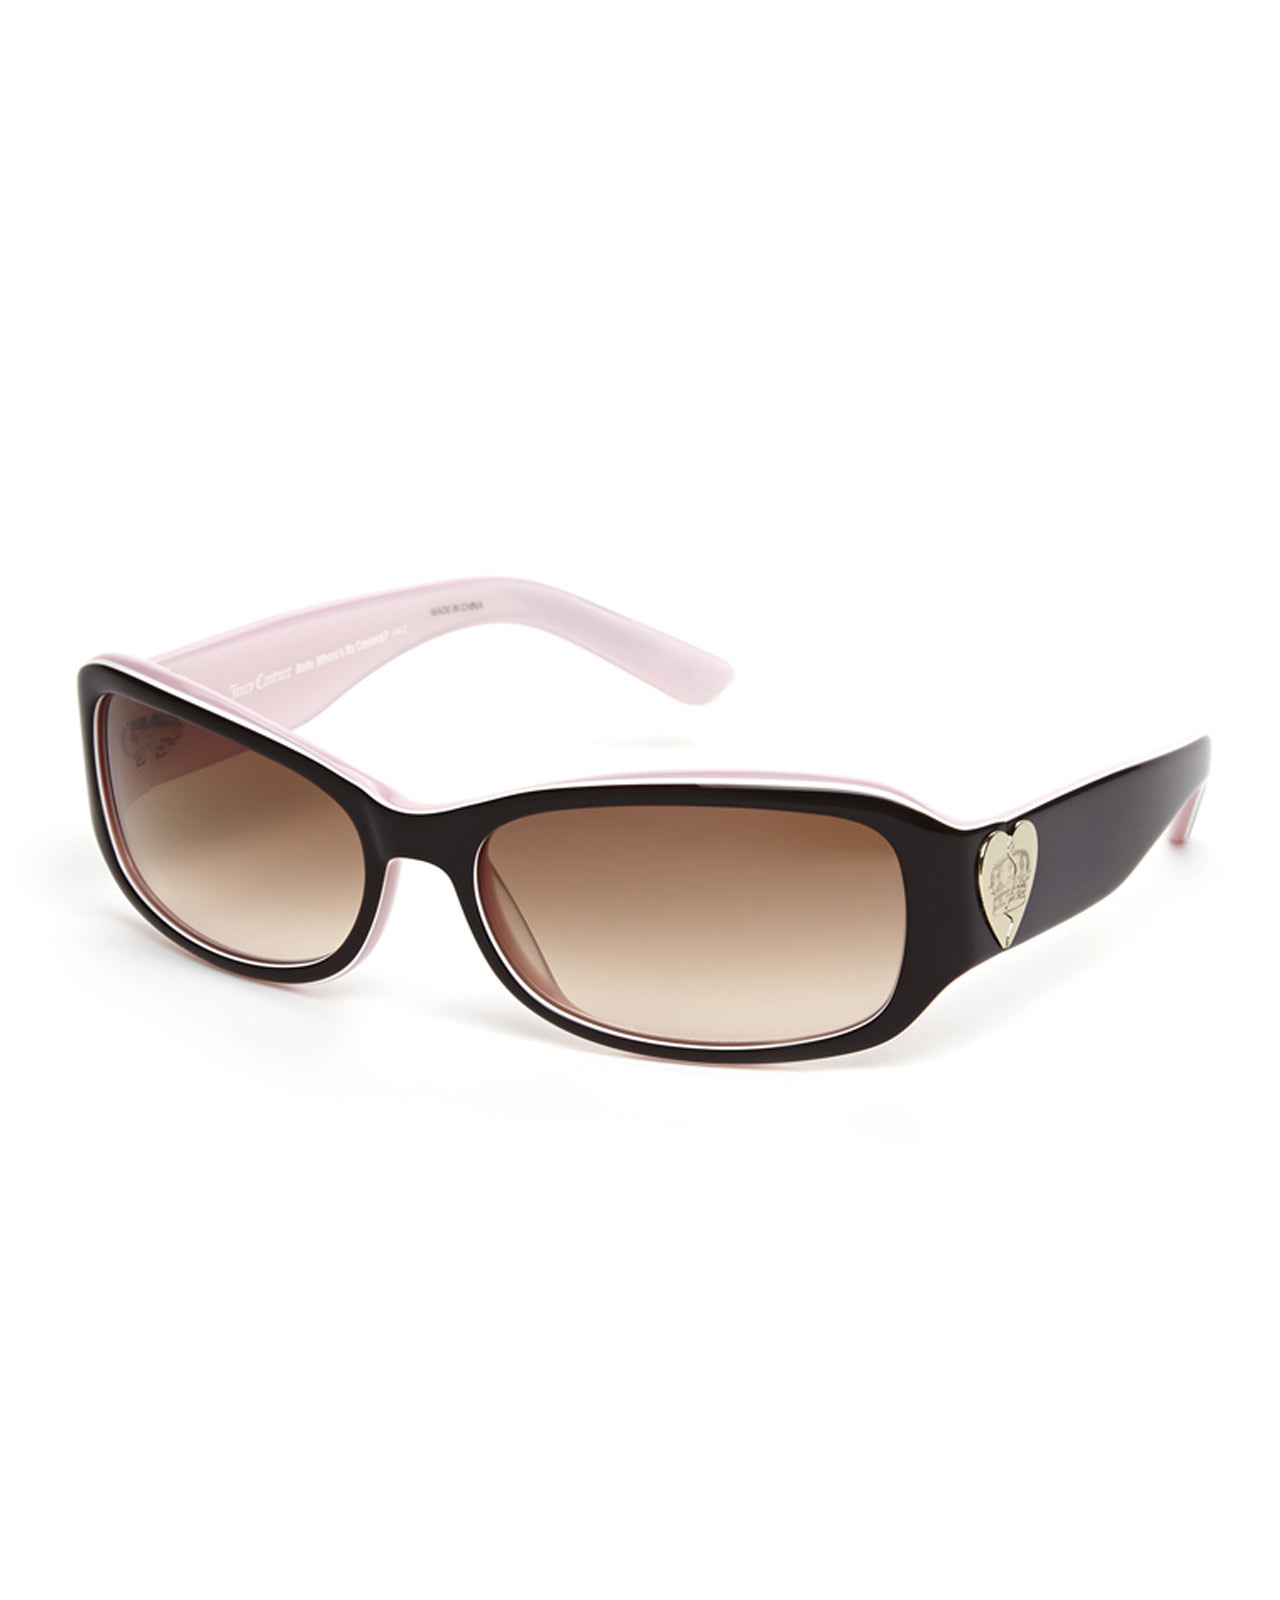 366ef80f7c Lyst - Juicy Couture Brown Christy Rectangular Sunglasses in Brown